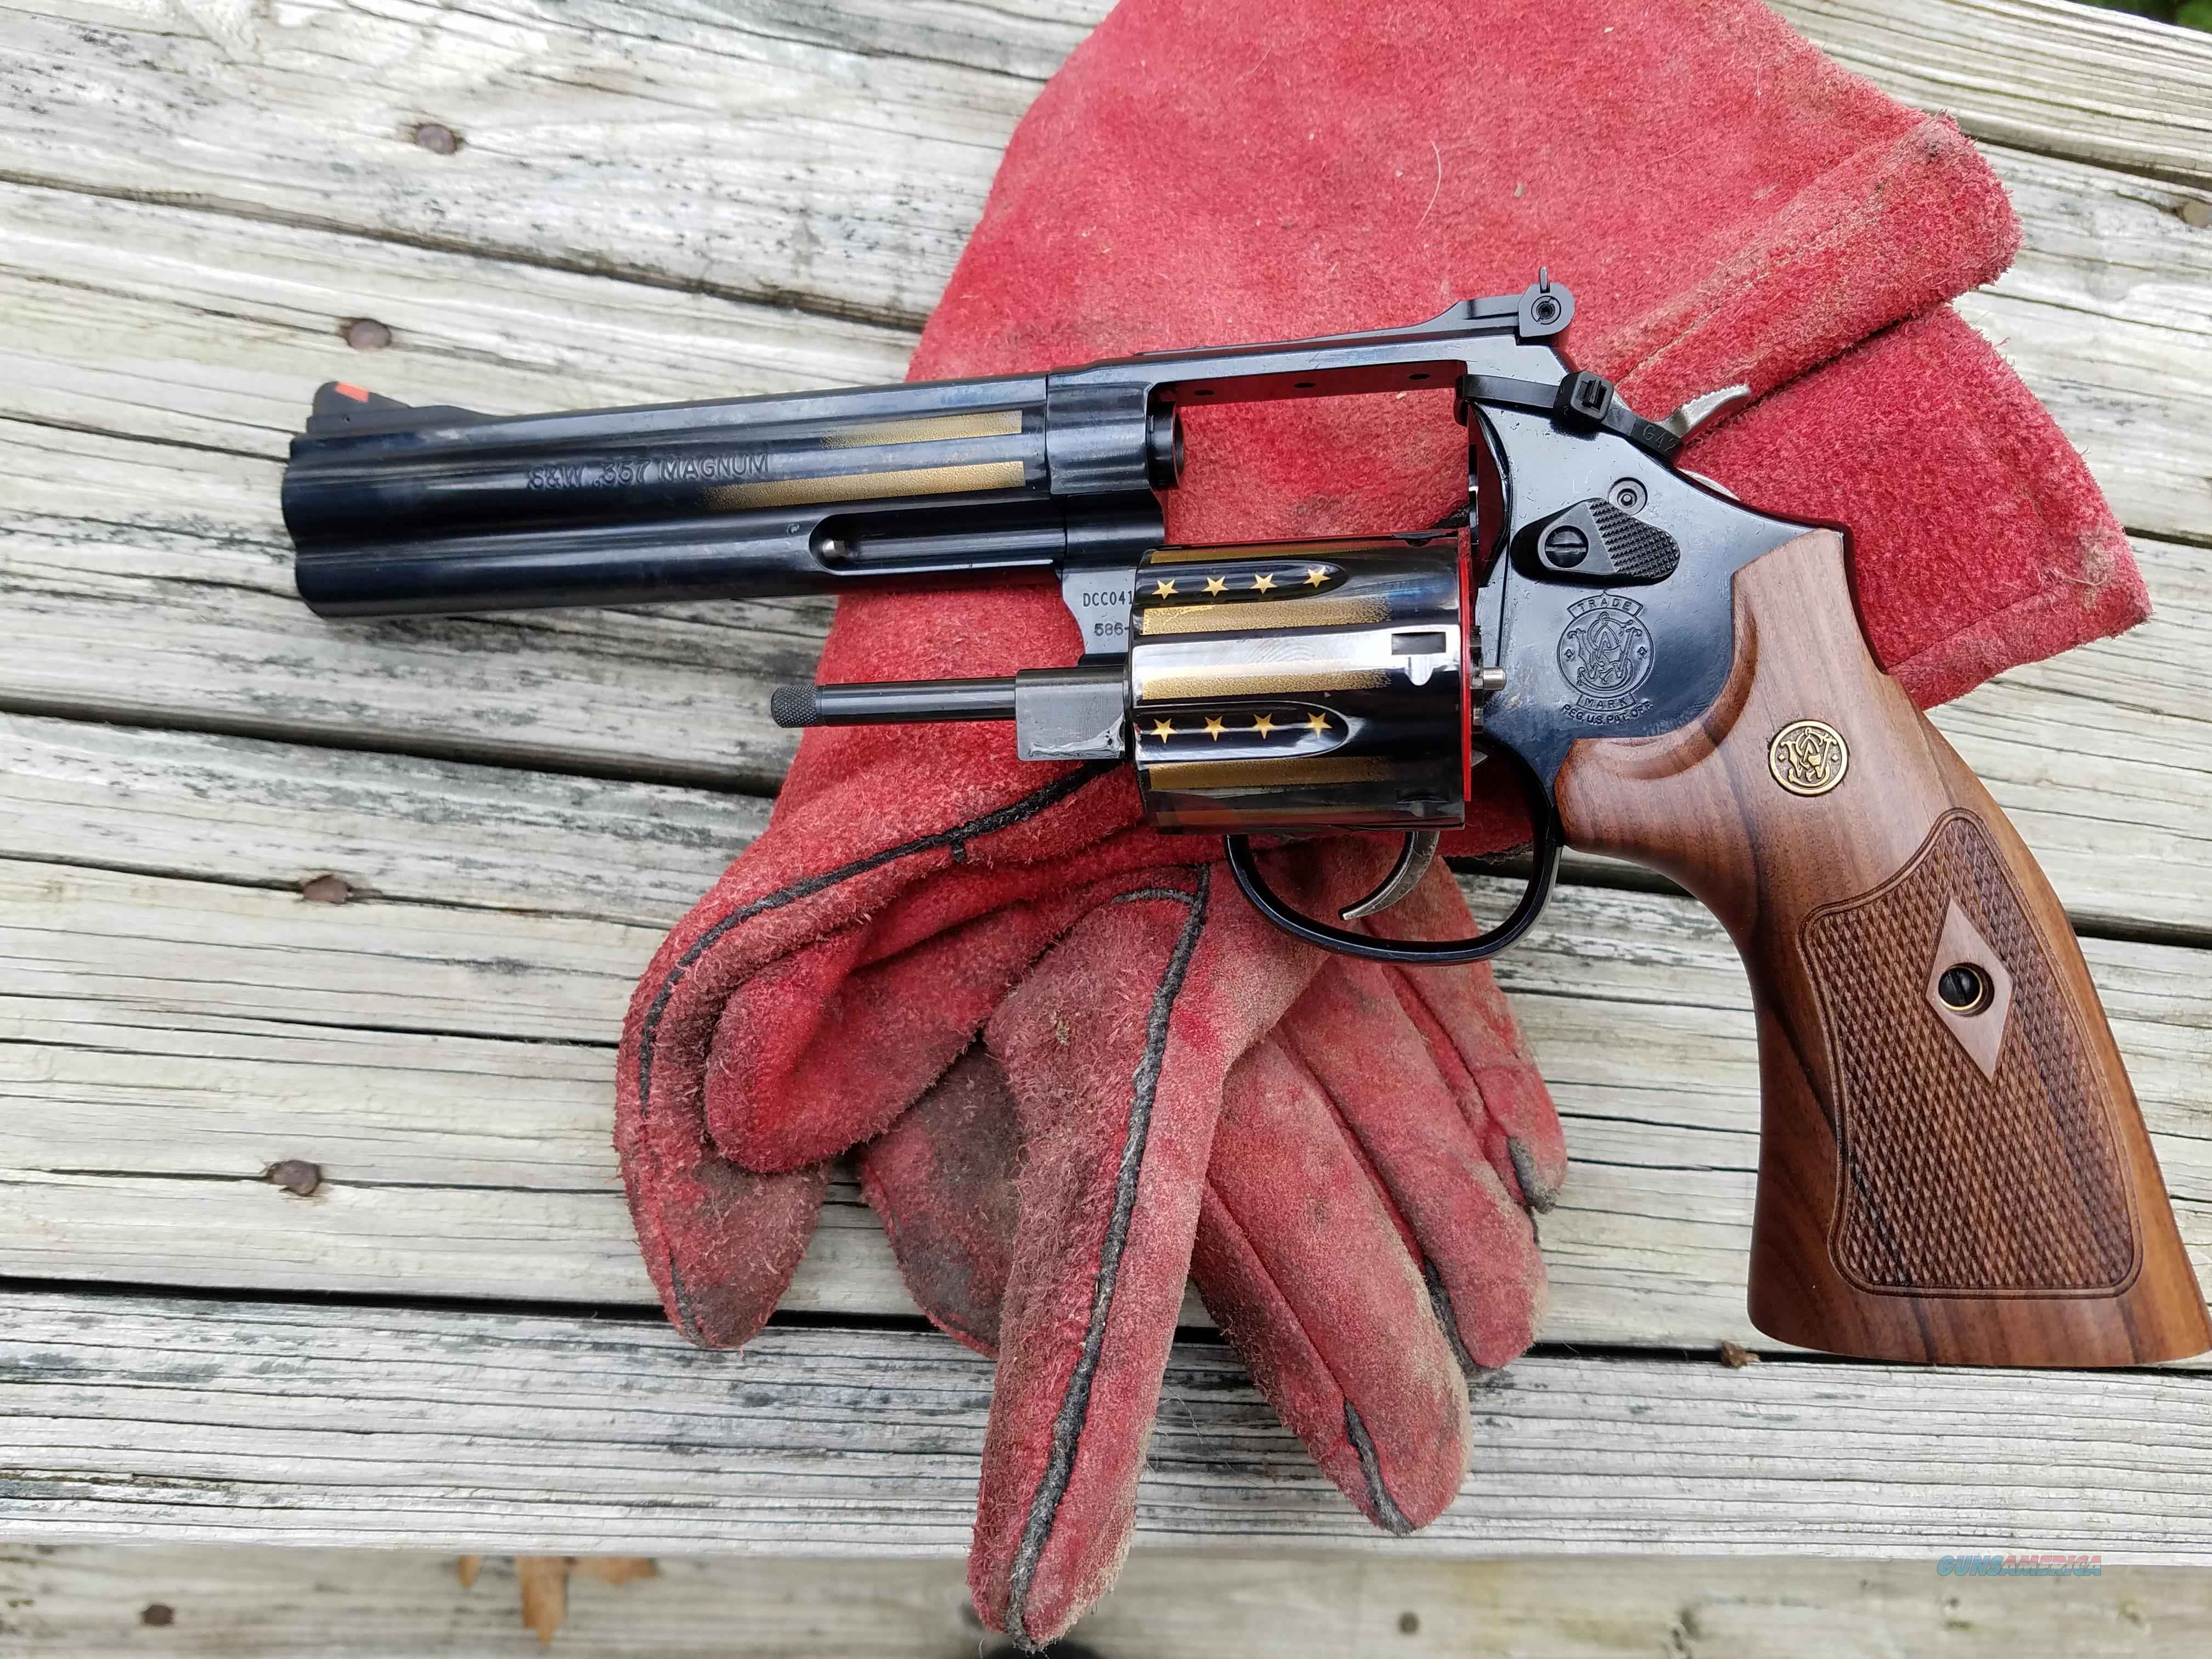 S&W 586-8  .357 Mag.  Price Cut - Make an offer  Guns > Pistols > Smith & Wesson Revolvers > Med. Frame ( K/L )